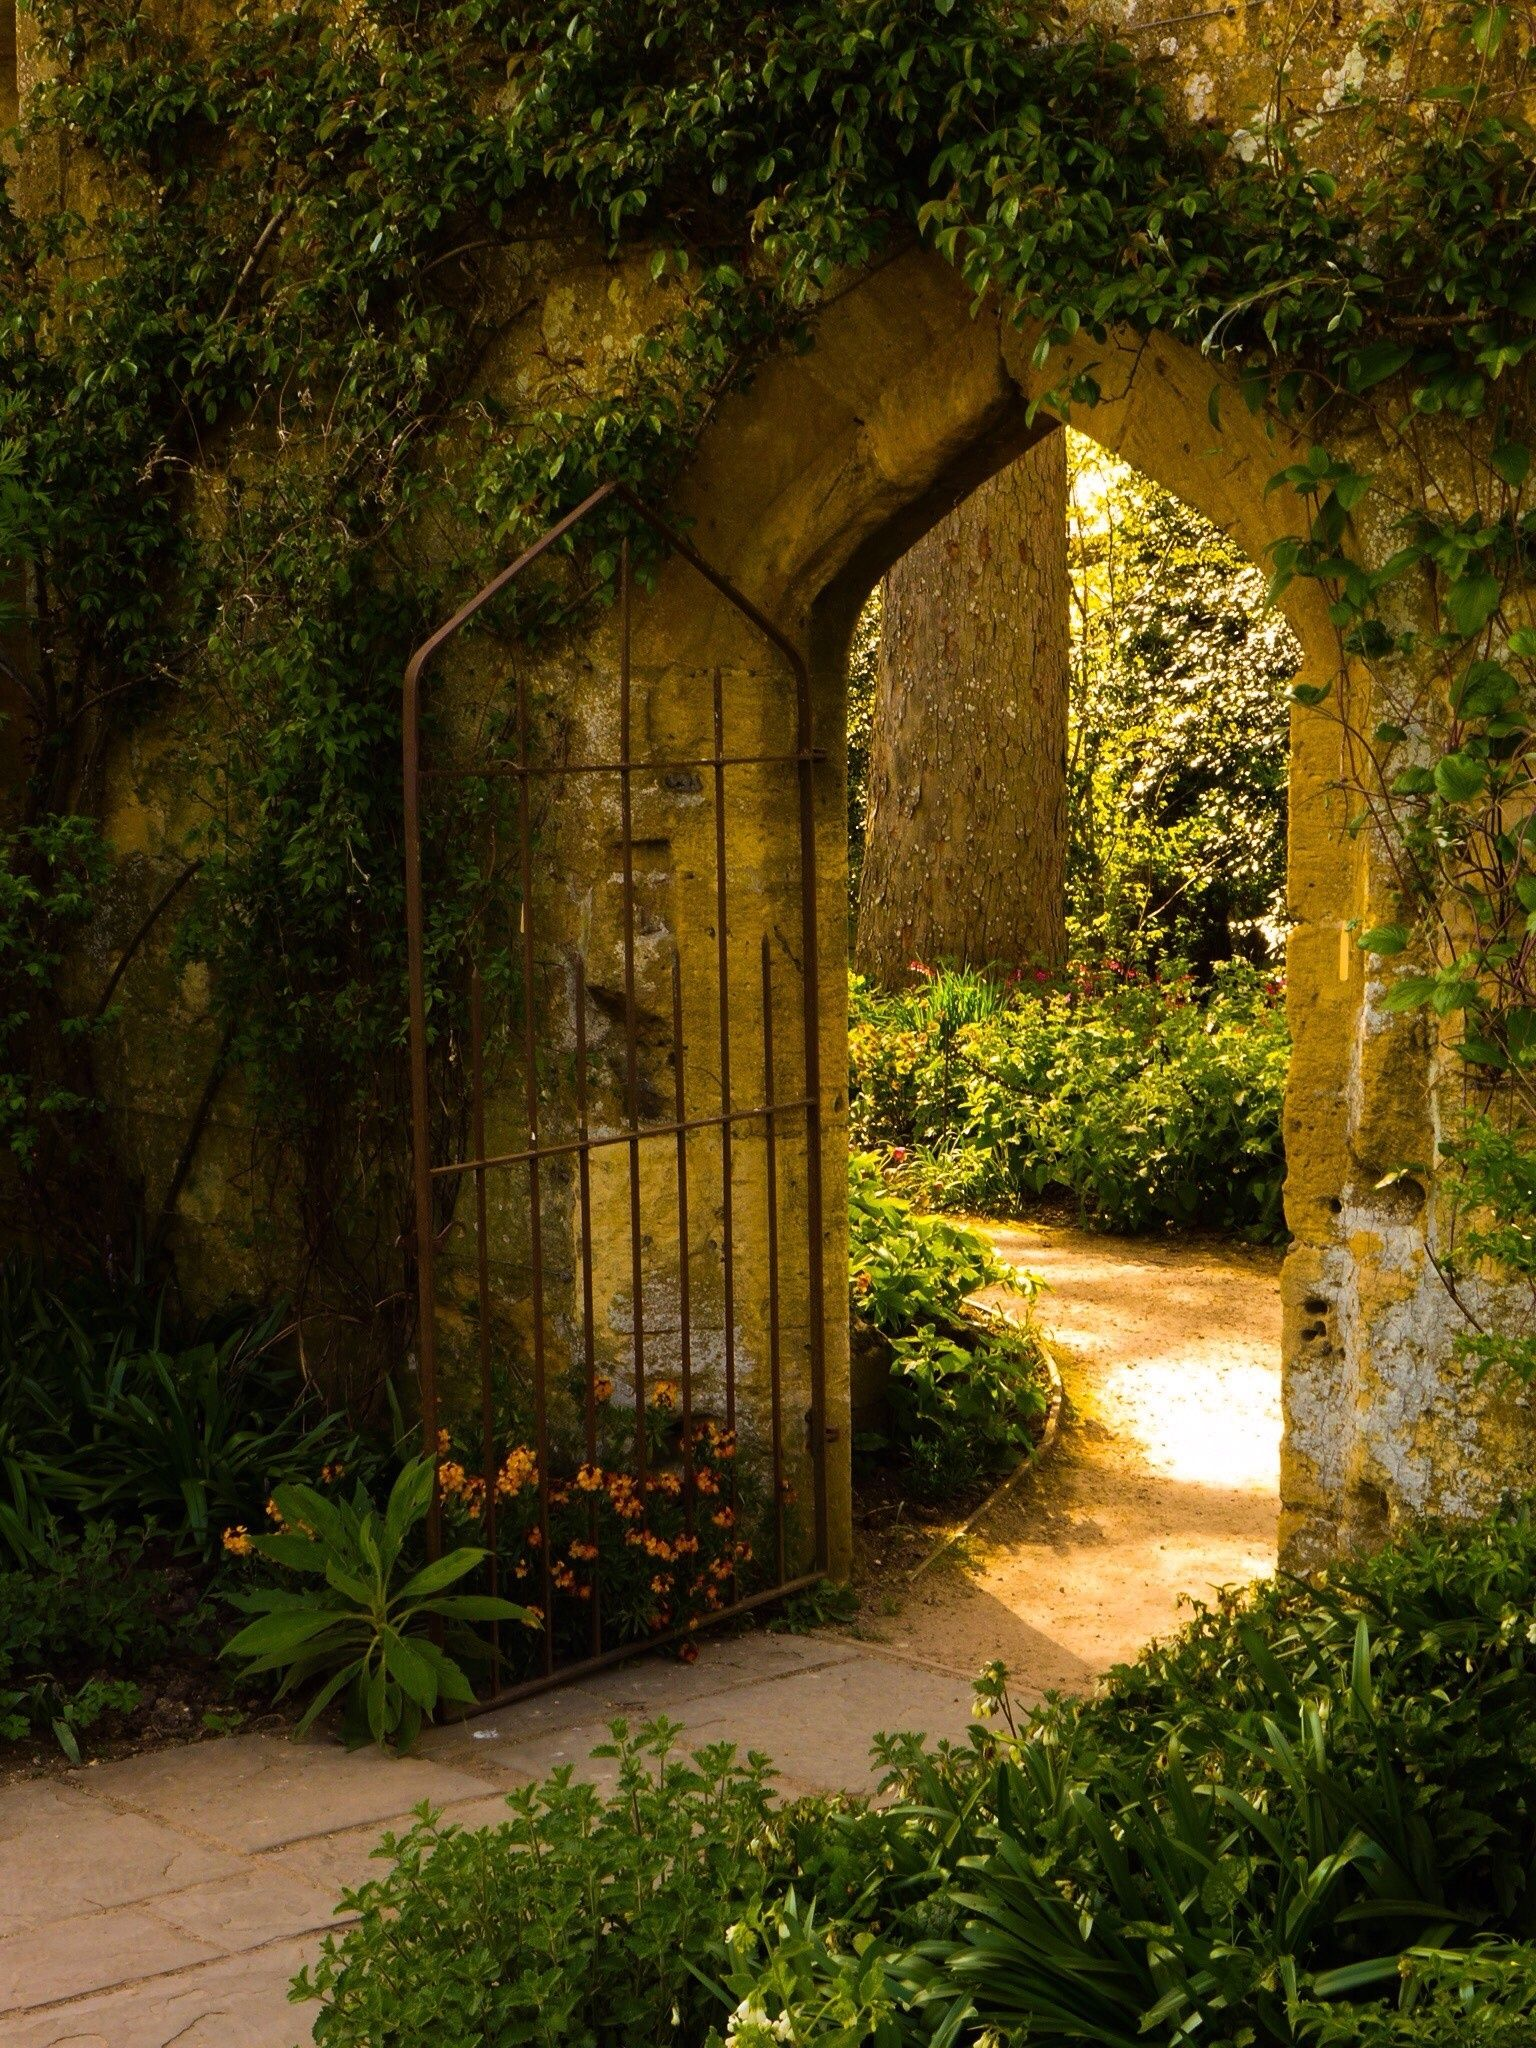 Secret Garden: The Secret Garden - By Stephen Warner